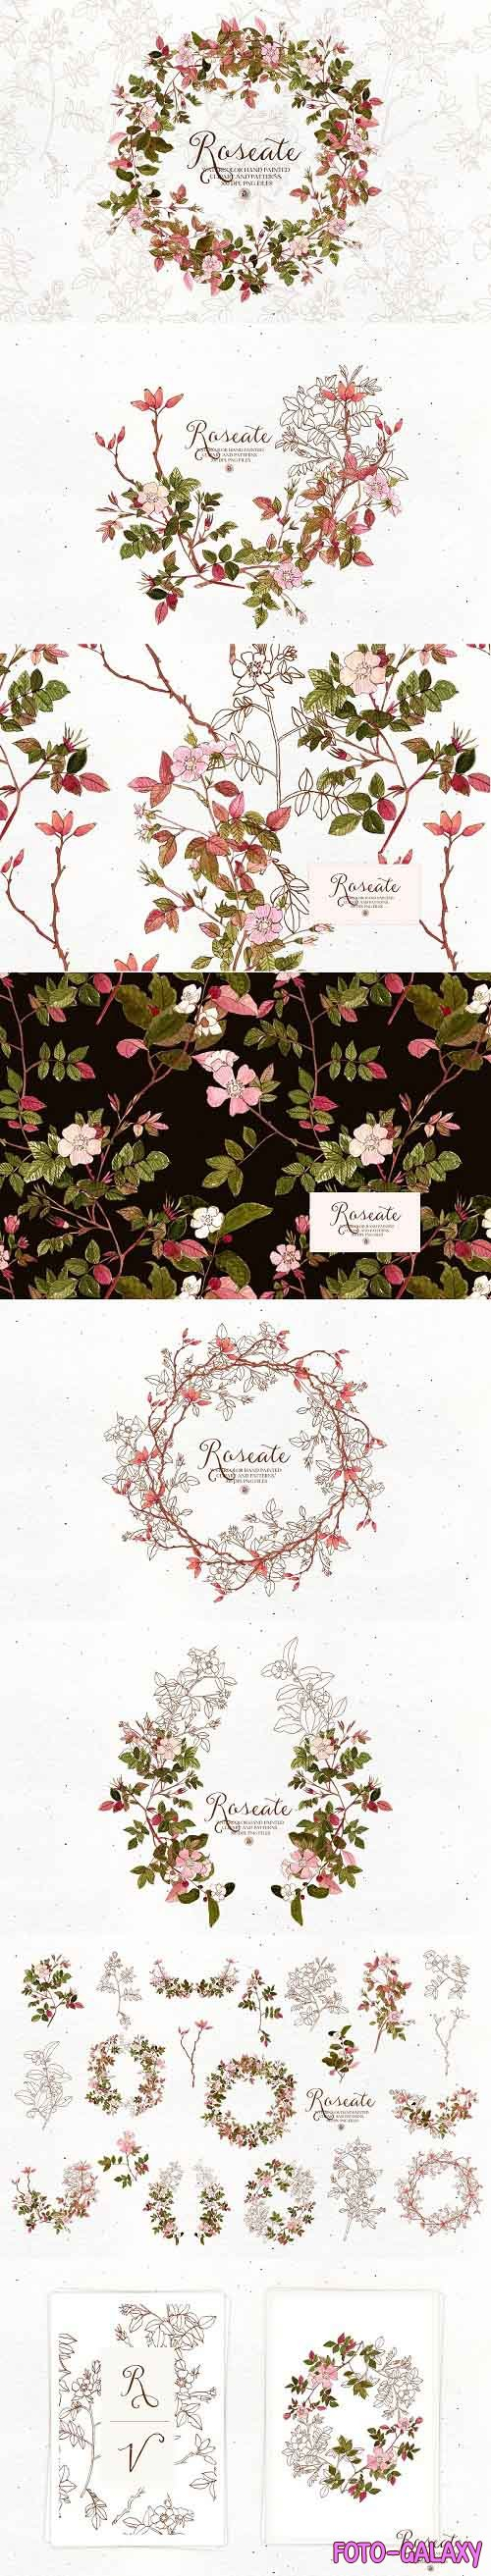 Roseate - watercolor floral clipart - 5807664